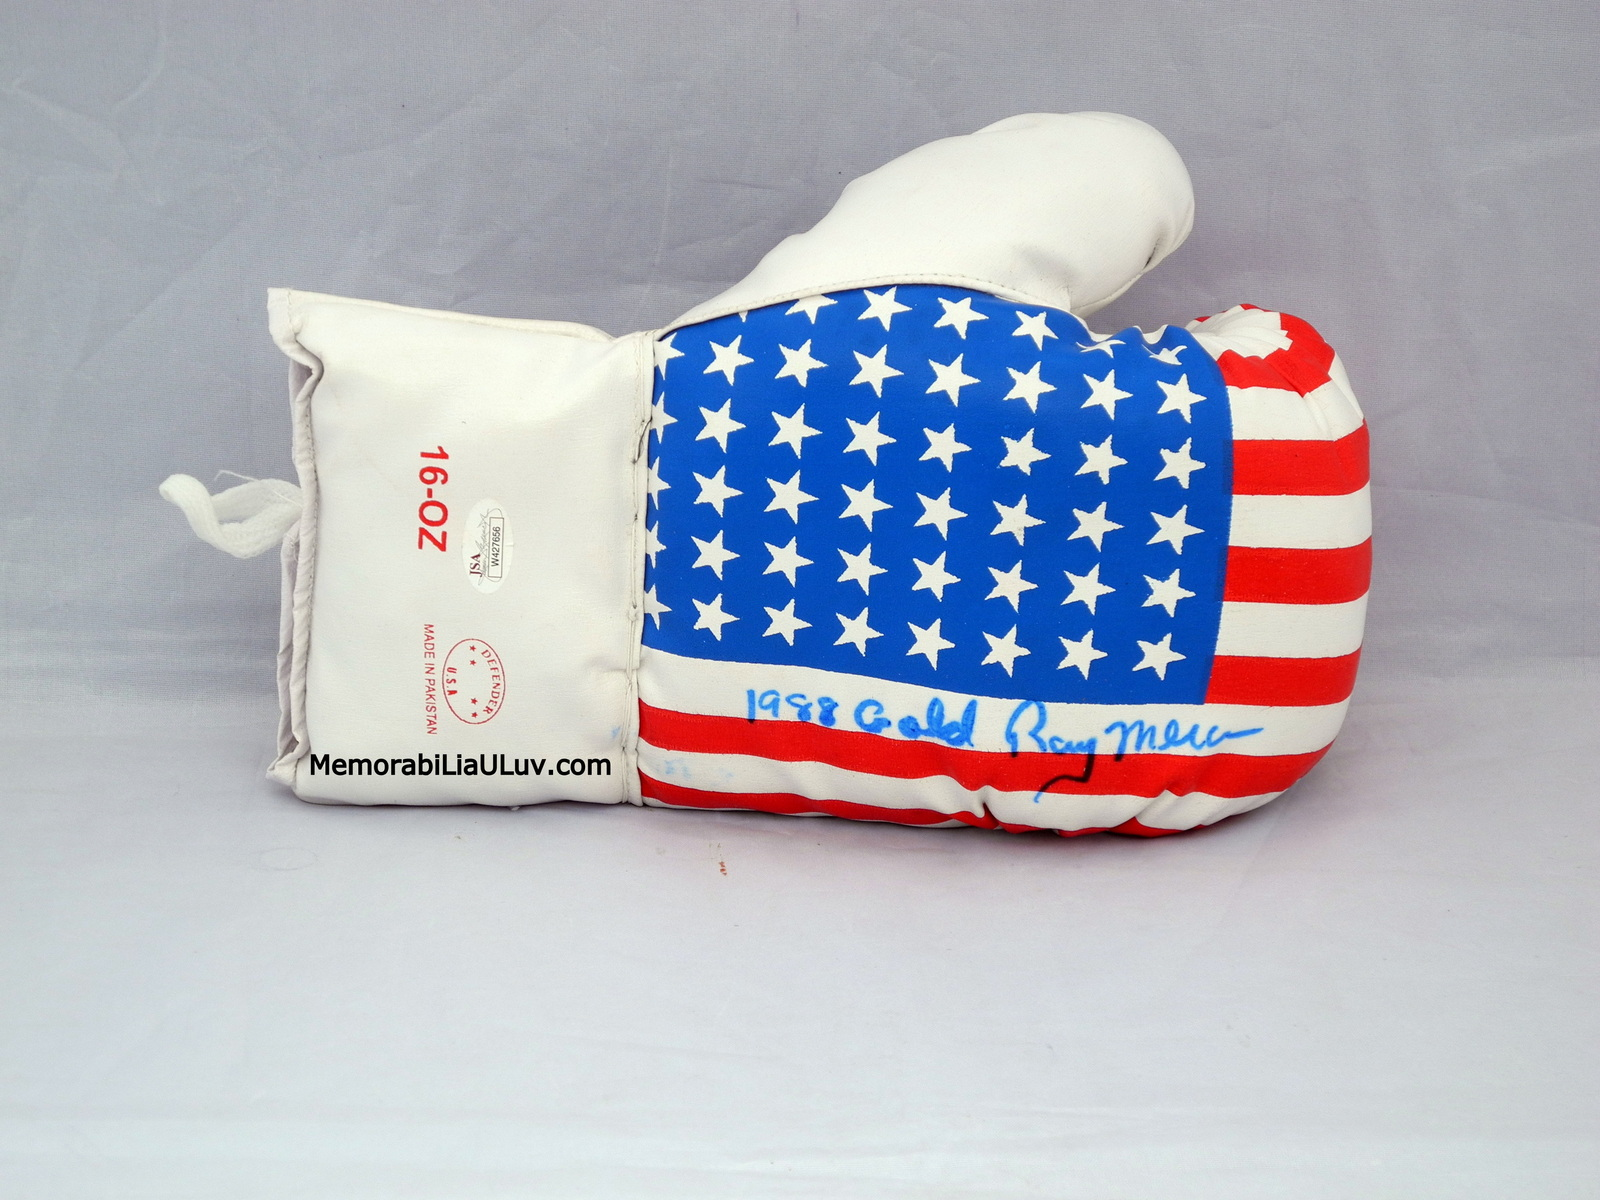 Ray Mercer Merciless Signed Autographed Team USA Boxing Glove image 4